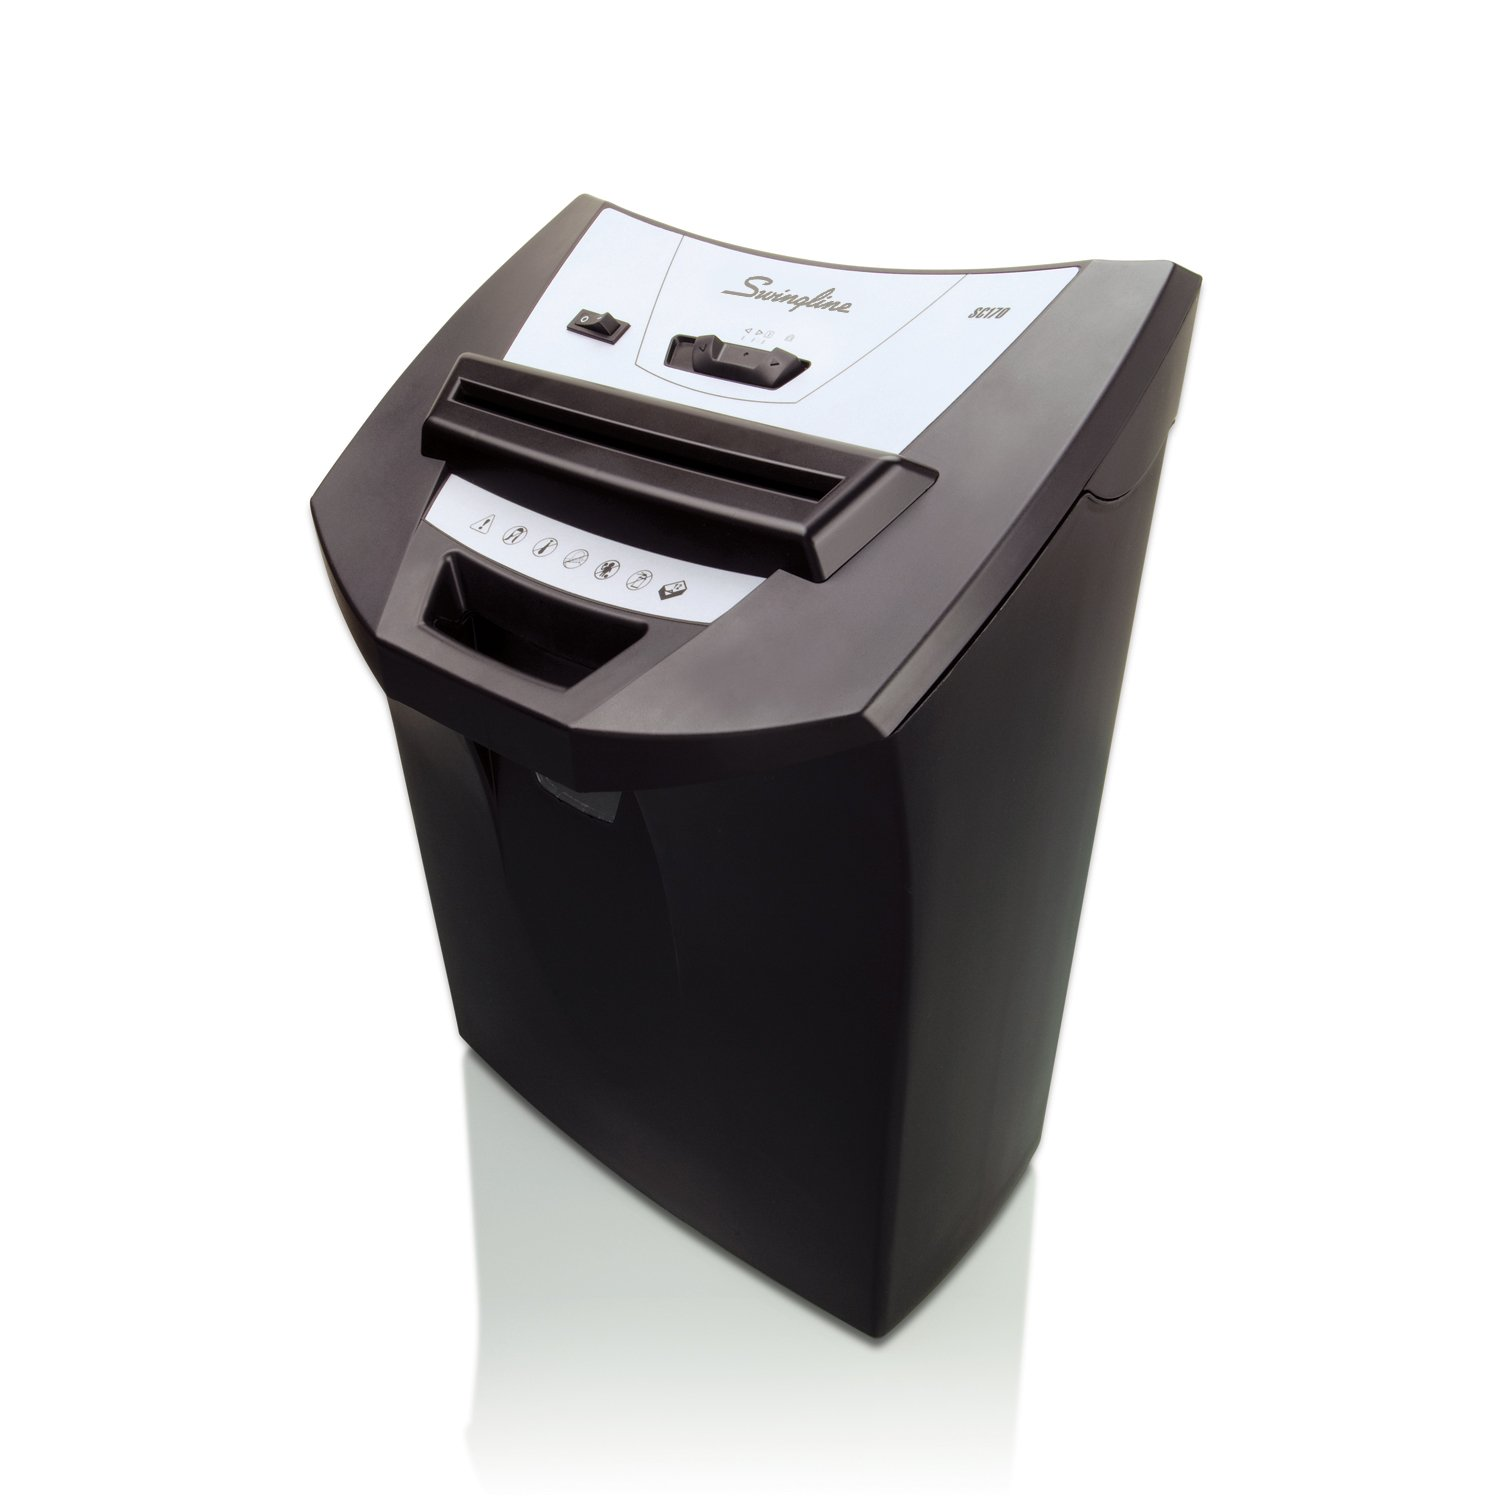 Swingline SC170 ShredMaster Strip-Cut Personal Shredder, 12 Sheet Capacity, 5.5 Gallon Waste Bin, 1 User (1757250) GBC Office Equipment